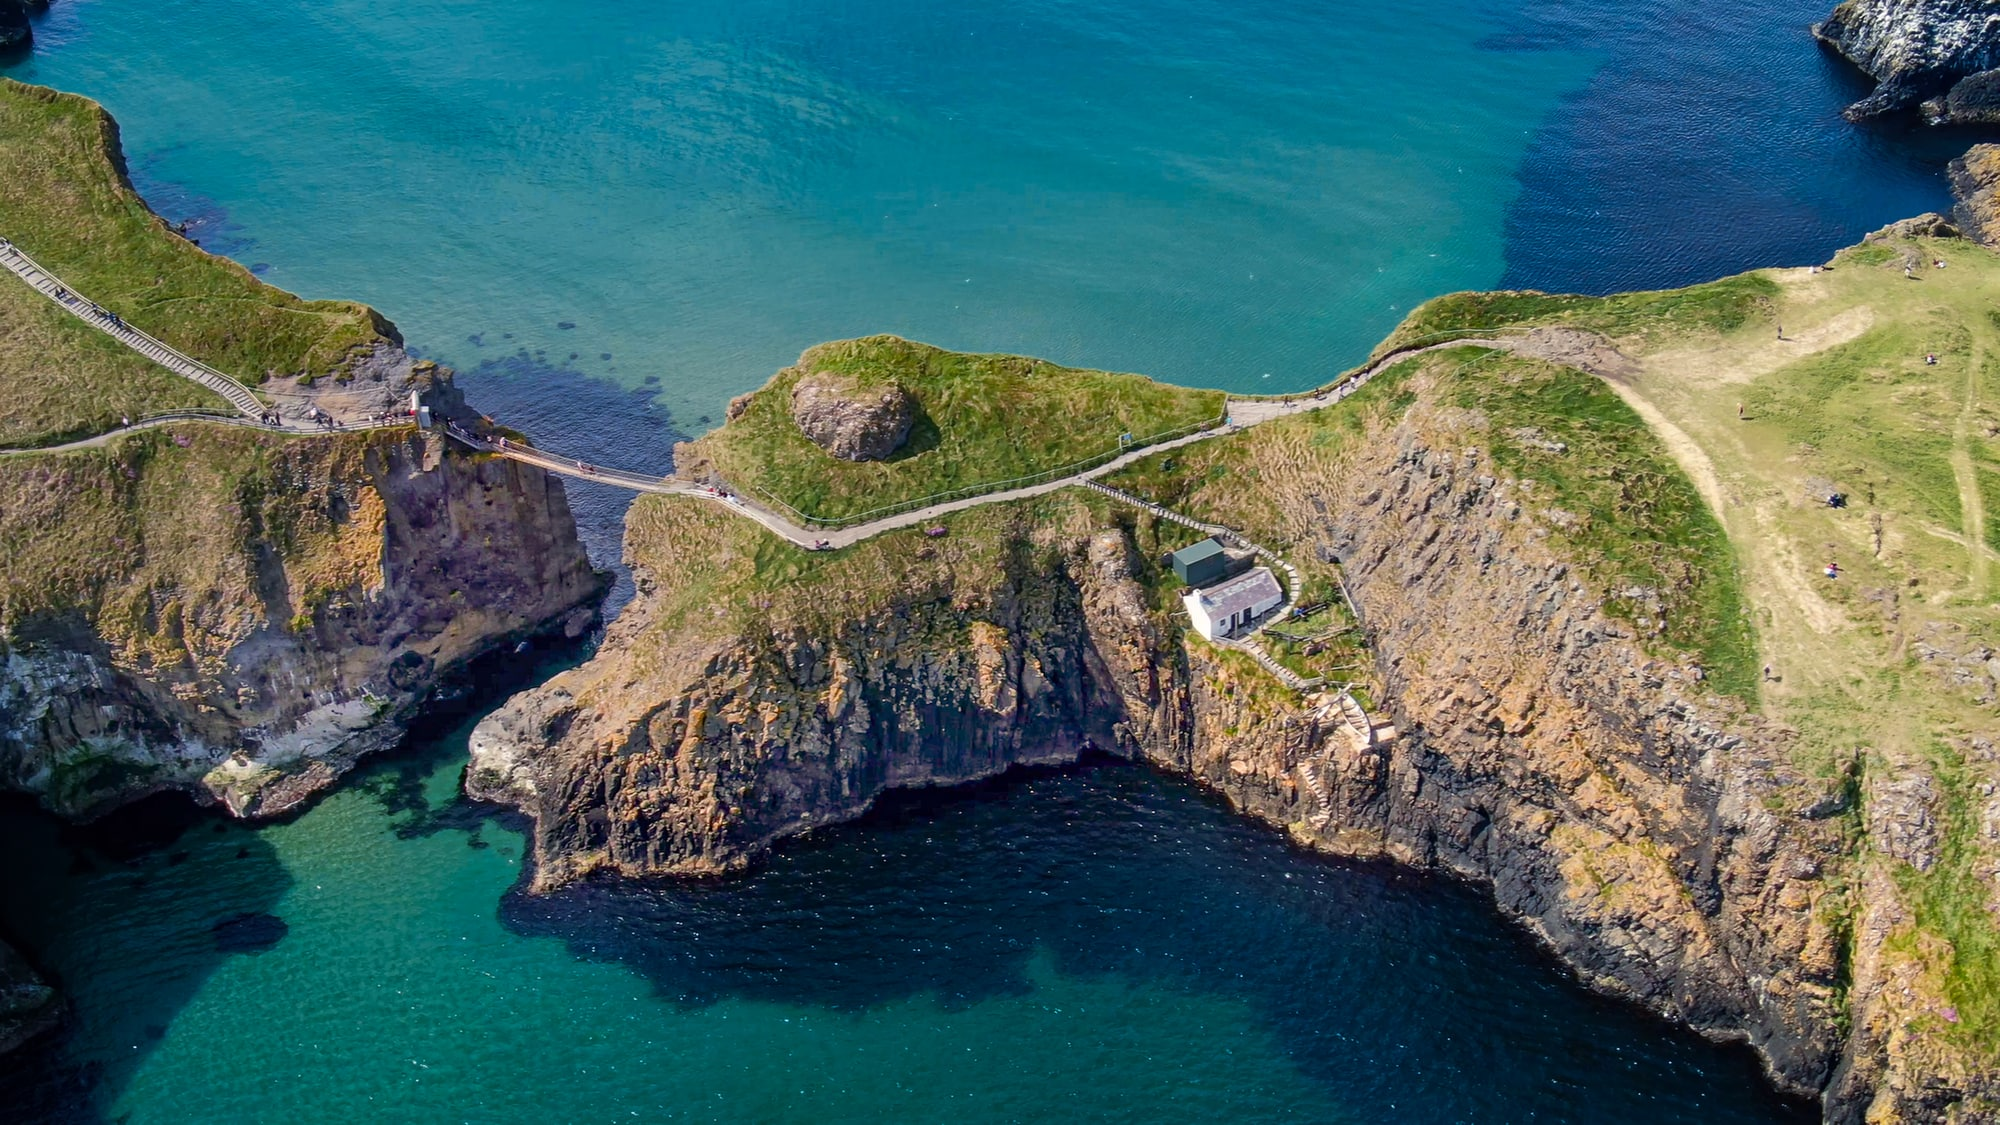 view from the sky of the Carrick-a-Rede rope bridge in N. Ireland